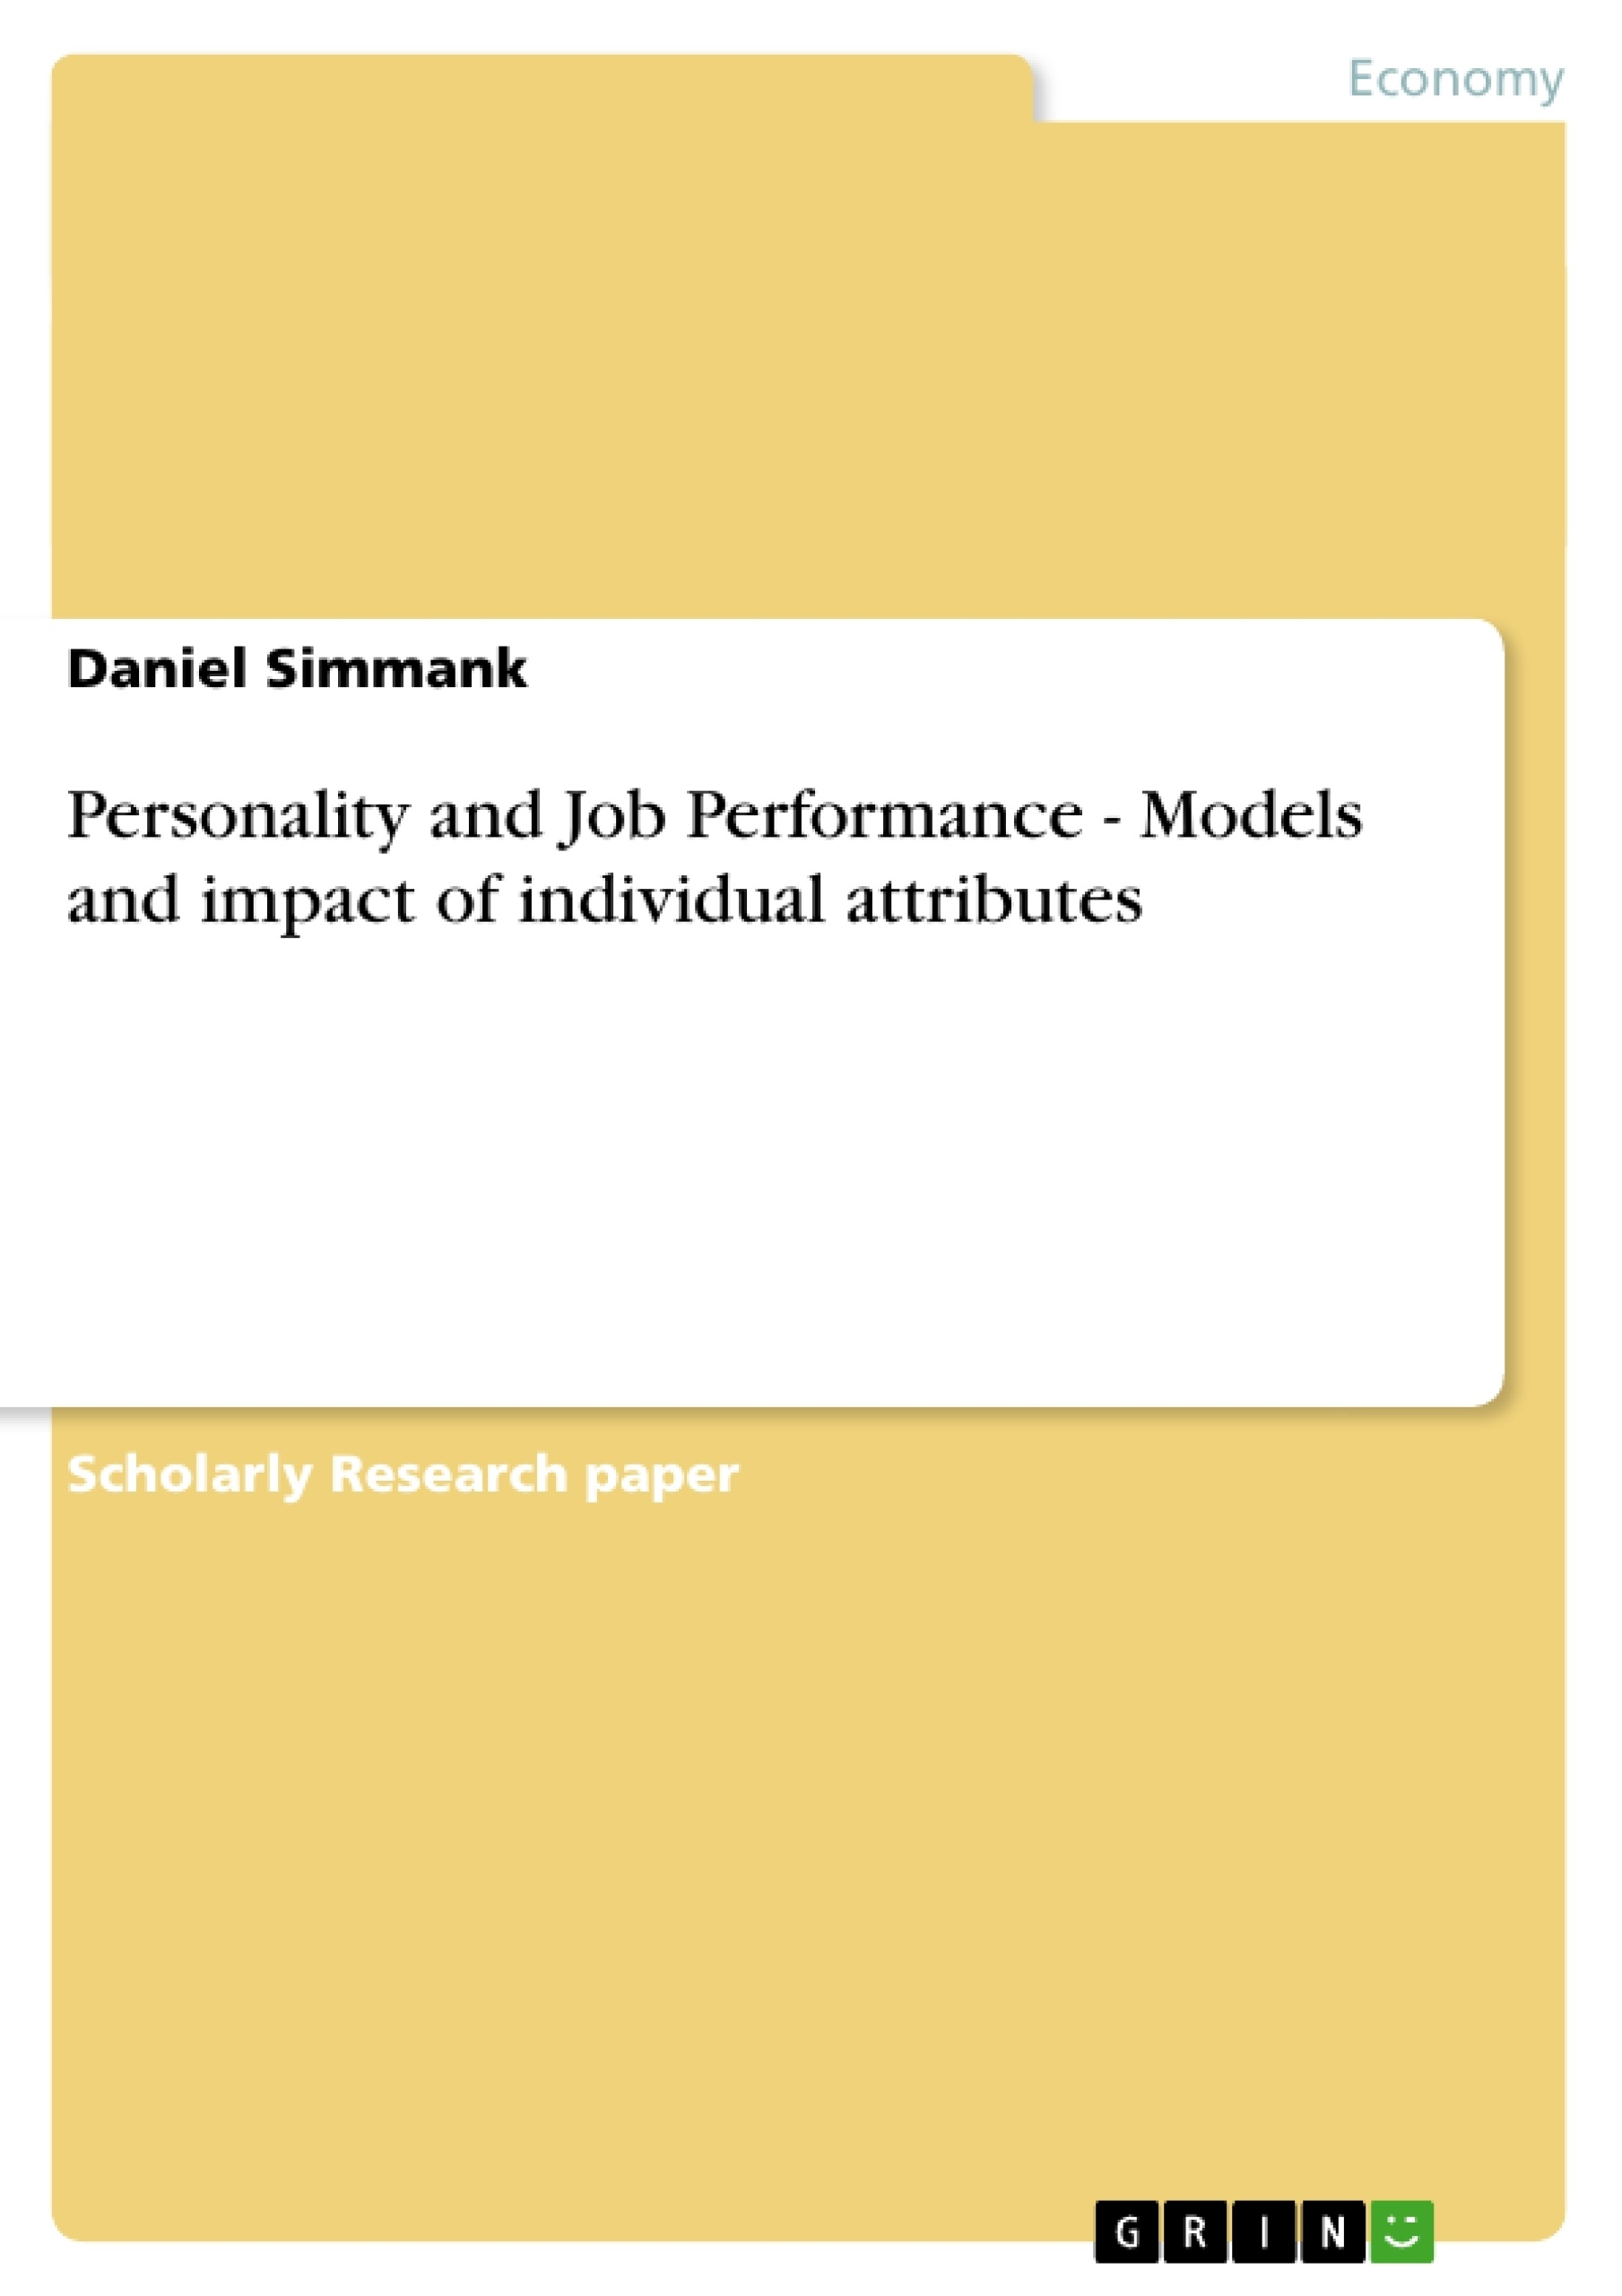 Title: Personality and Job Performance - Models and impact of individual attributes